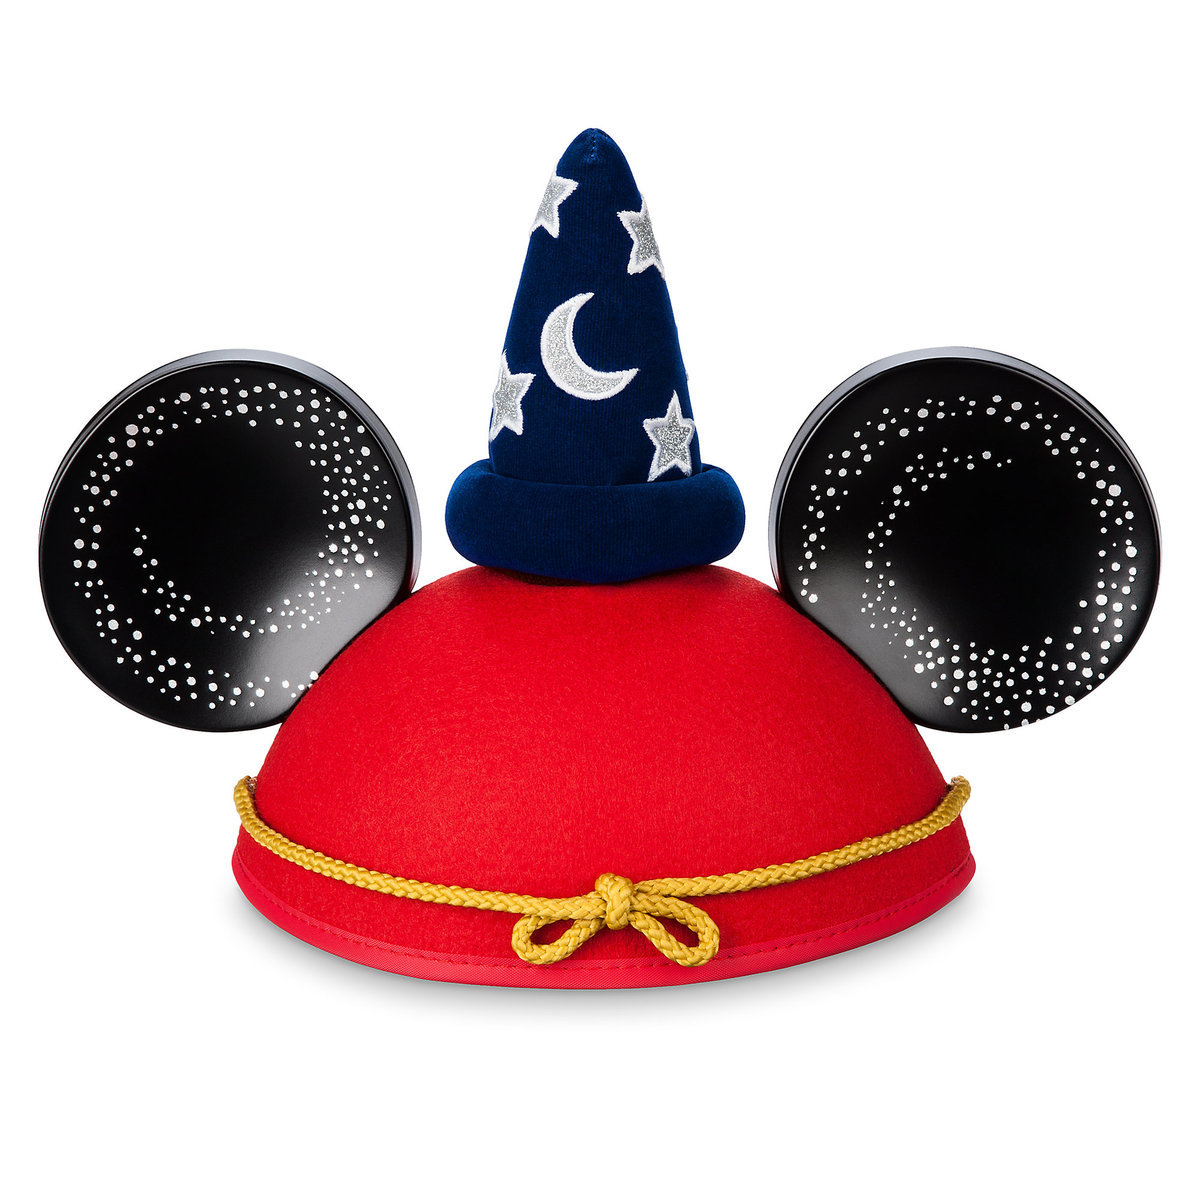 5466c4daa71 Product Image of Sorcerer Mickey Mouse Ear Hat for Adults   1